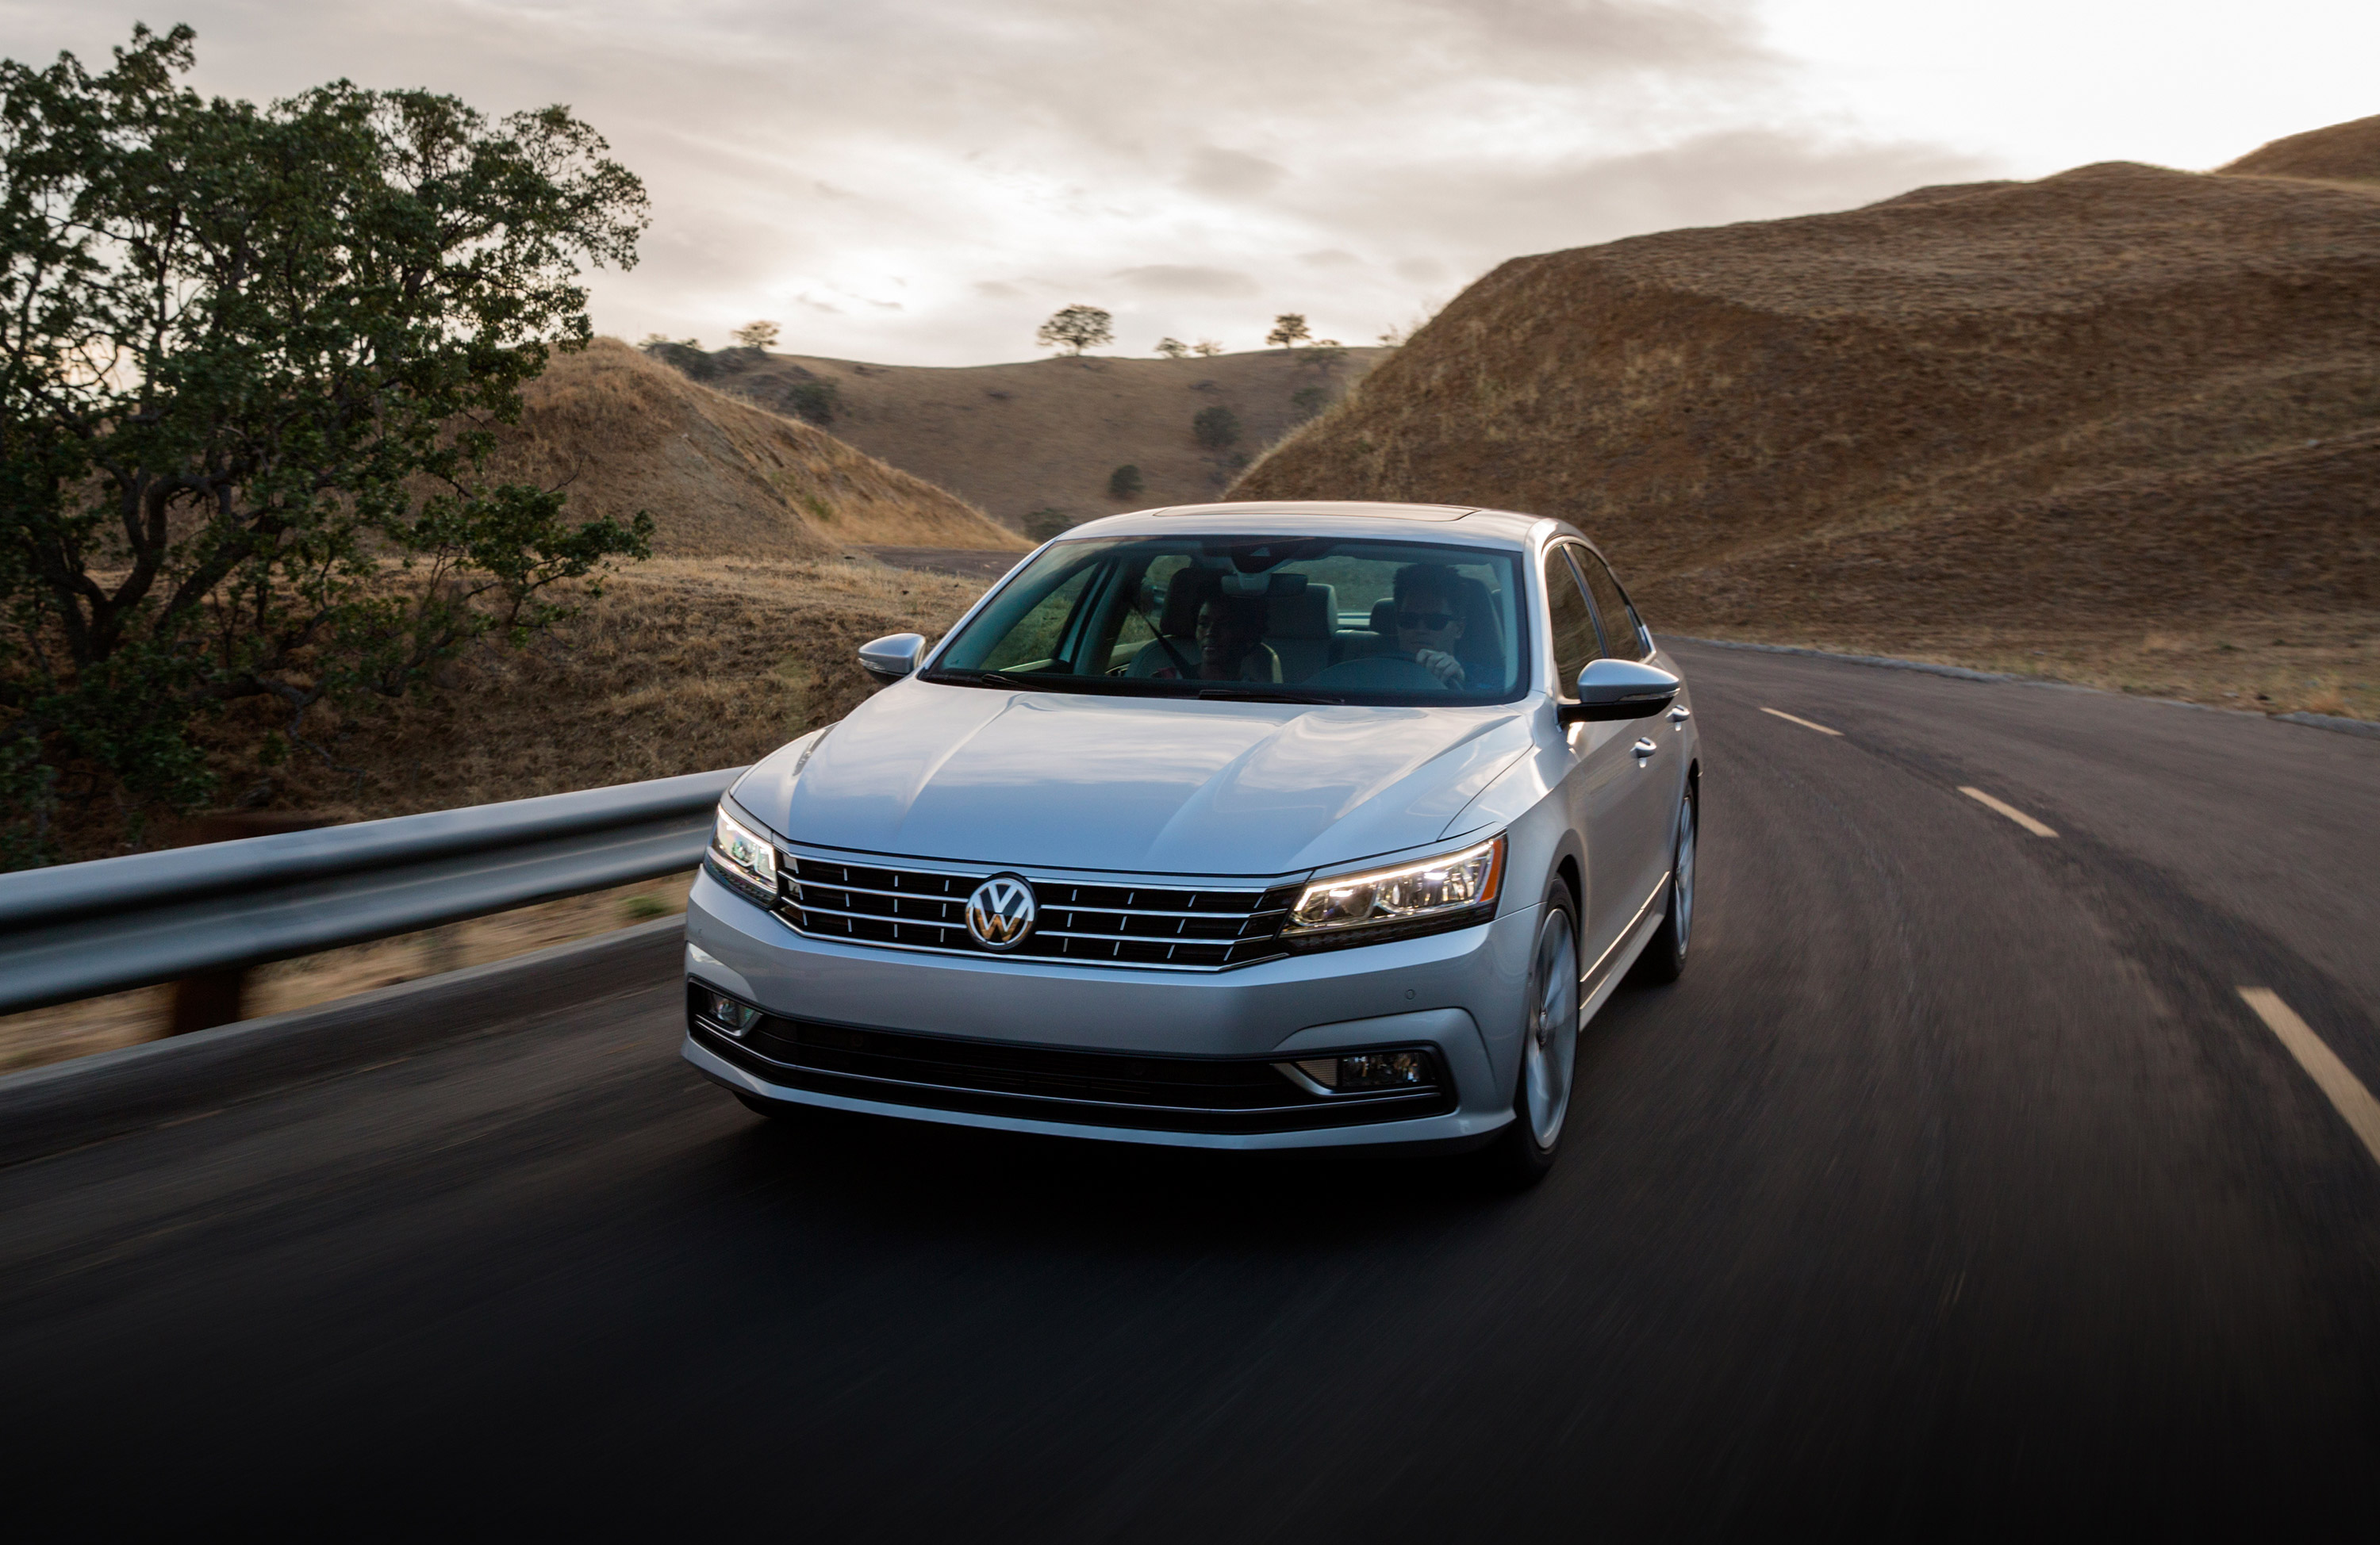 New Volkswagen Passat Lease Deals & Finance fers Van Nuys CA